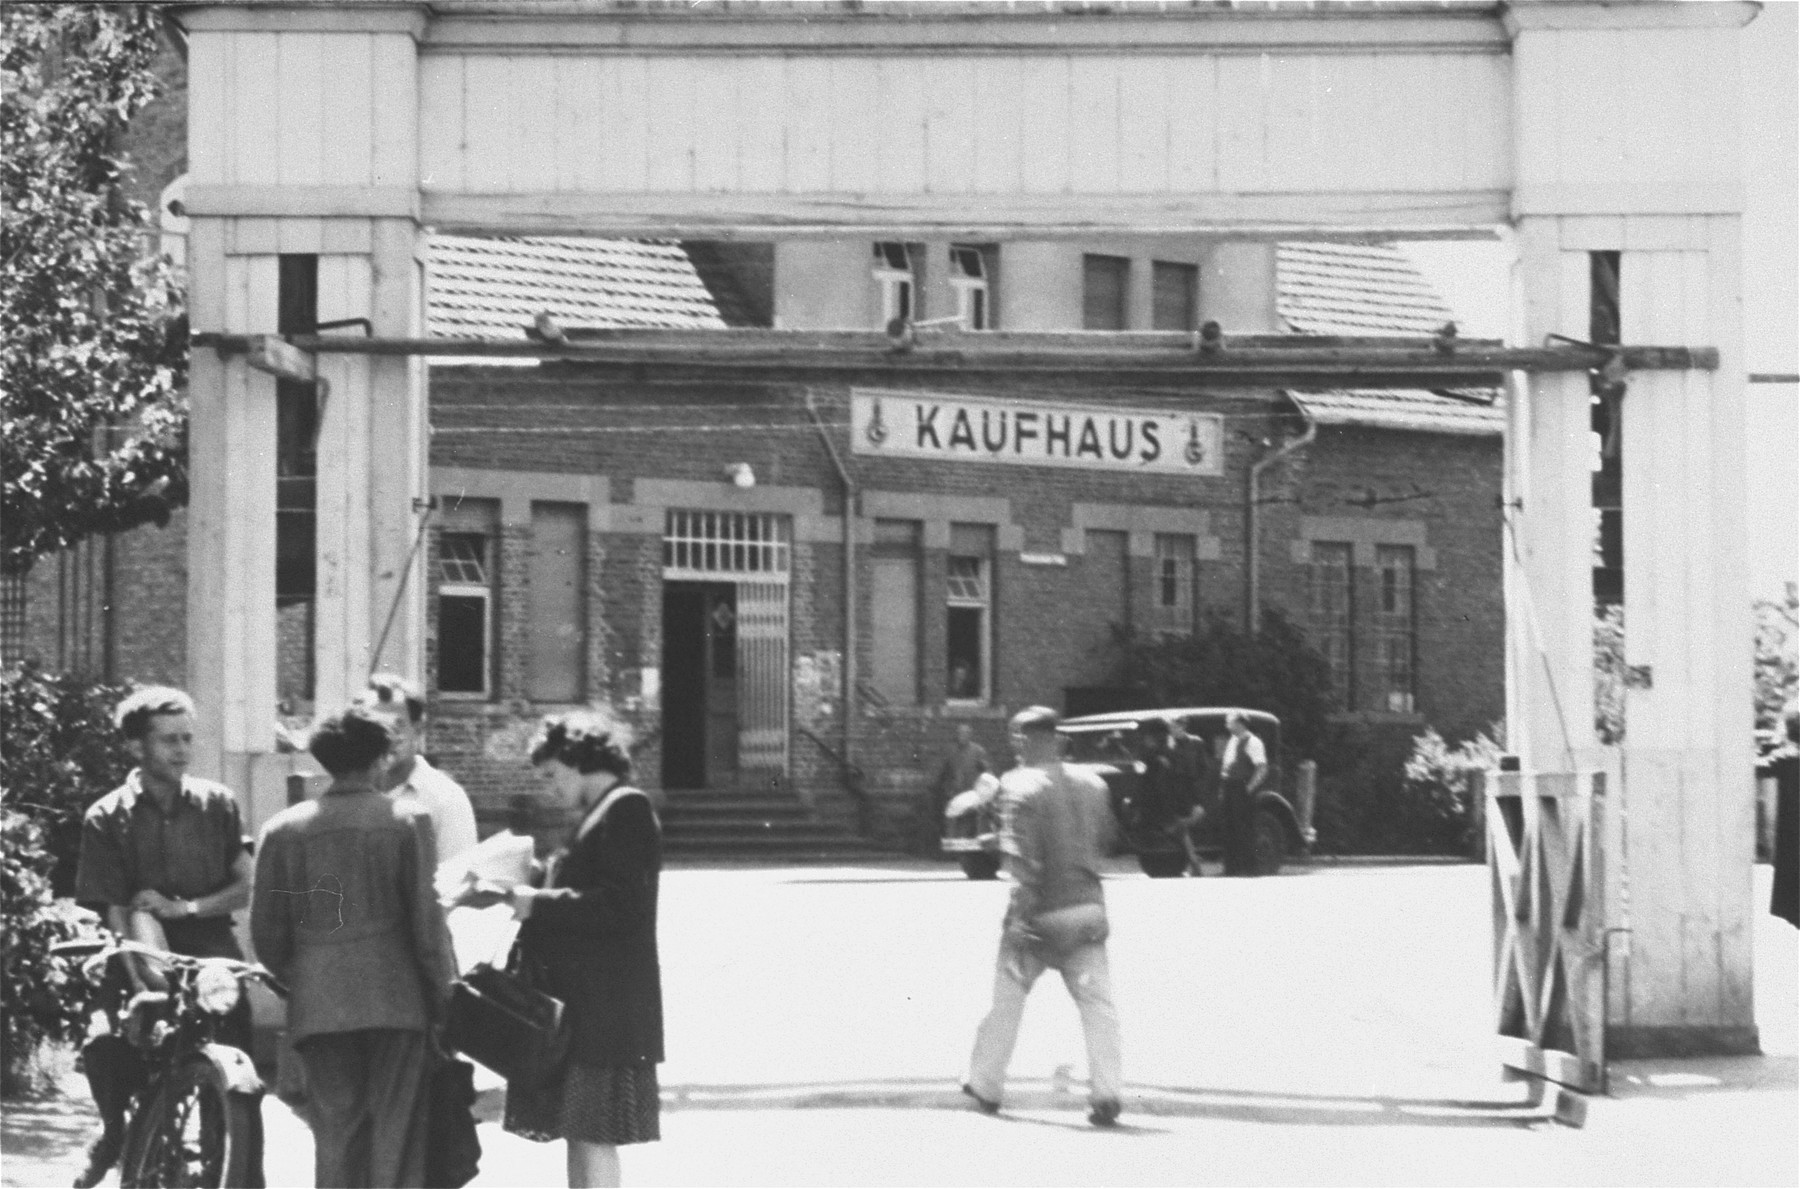 Street scene in front of the Kaufhaus [department store] in the Zeilsheim displaced persons' camp.